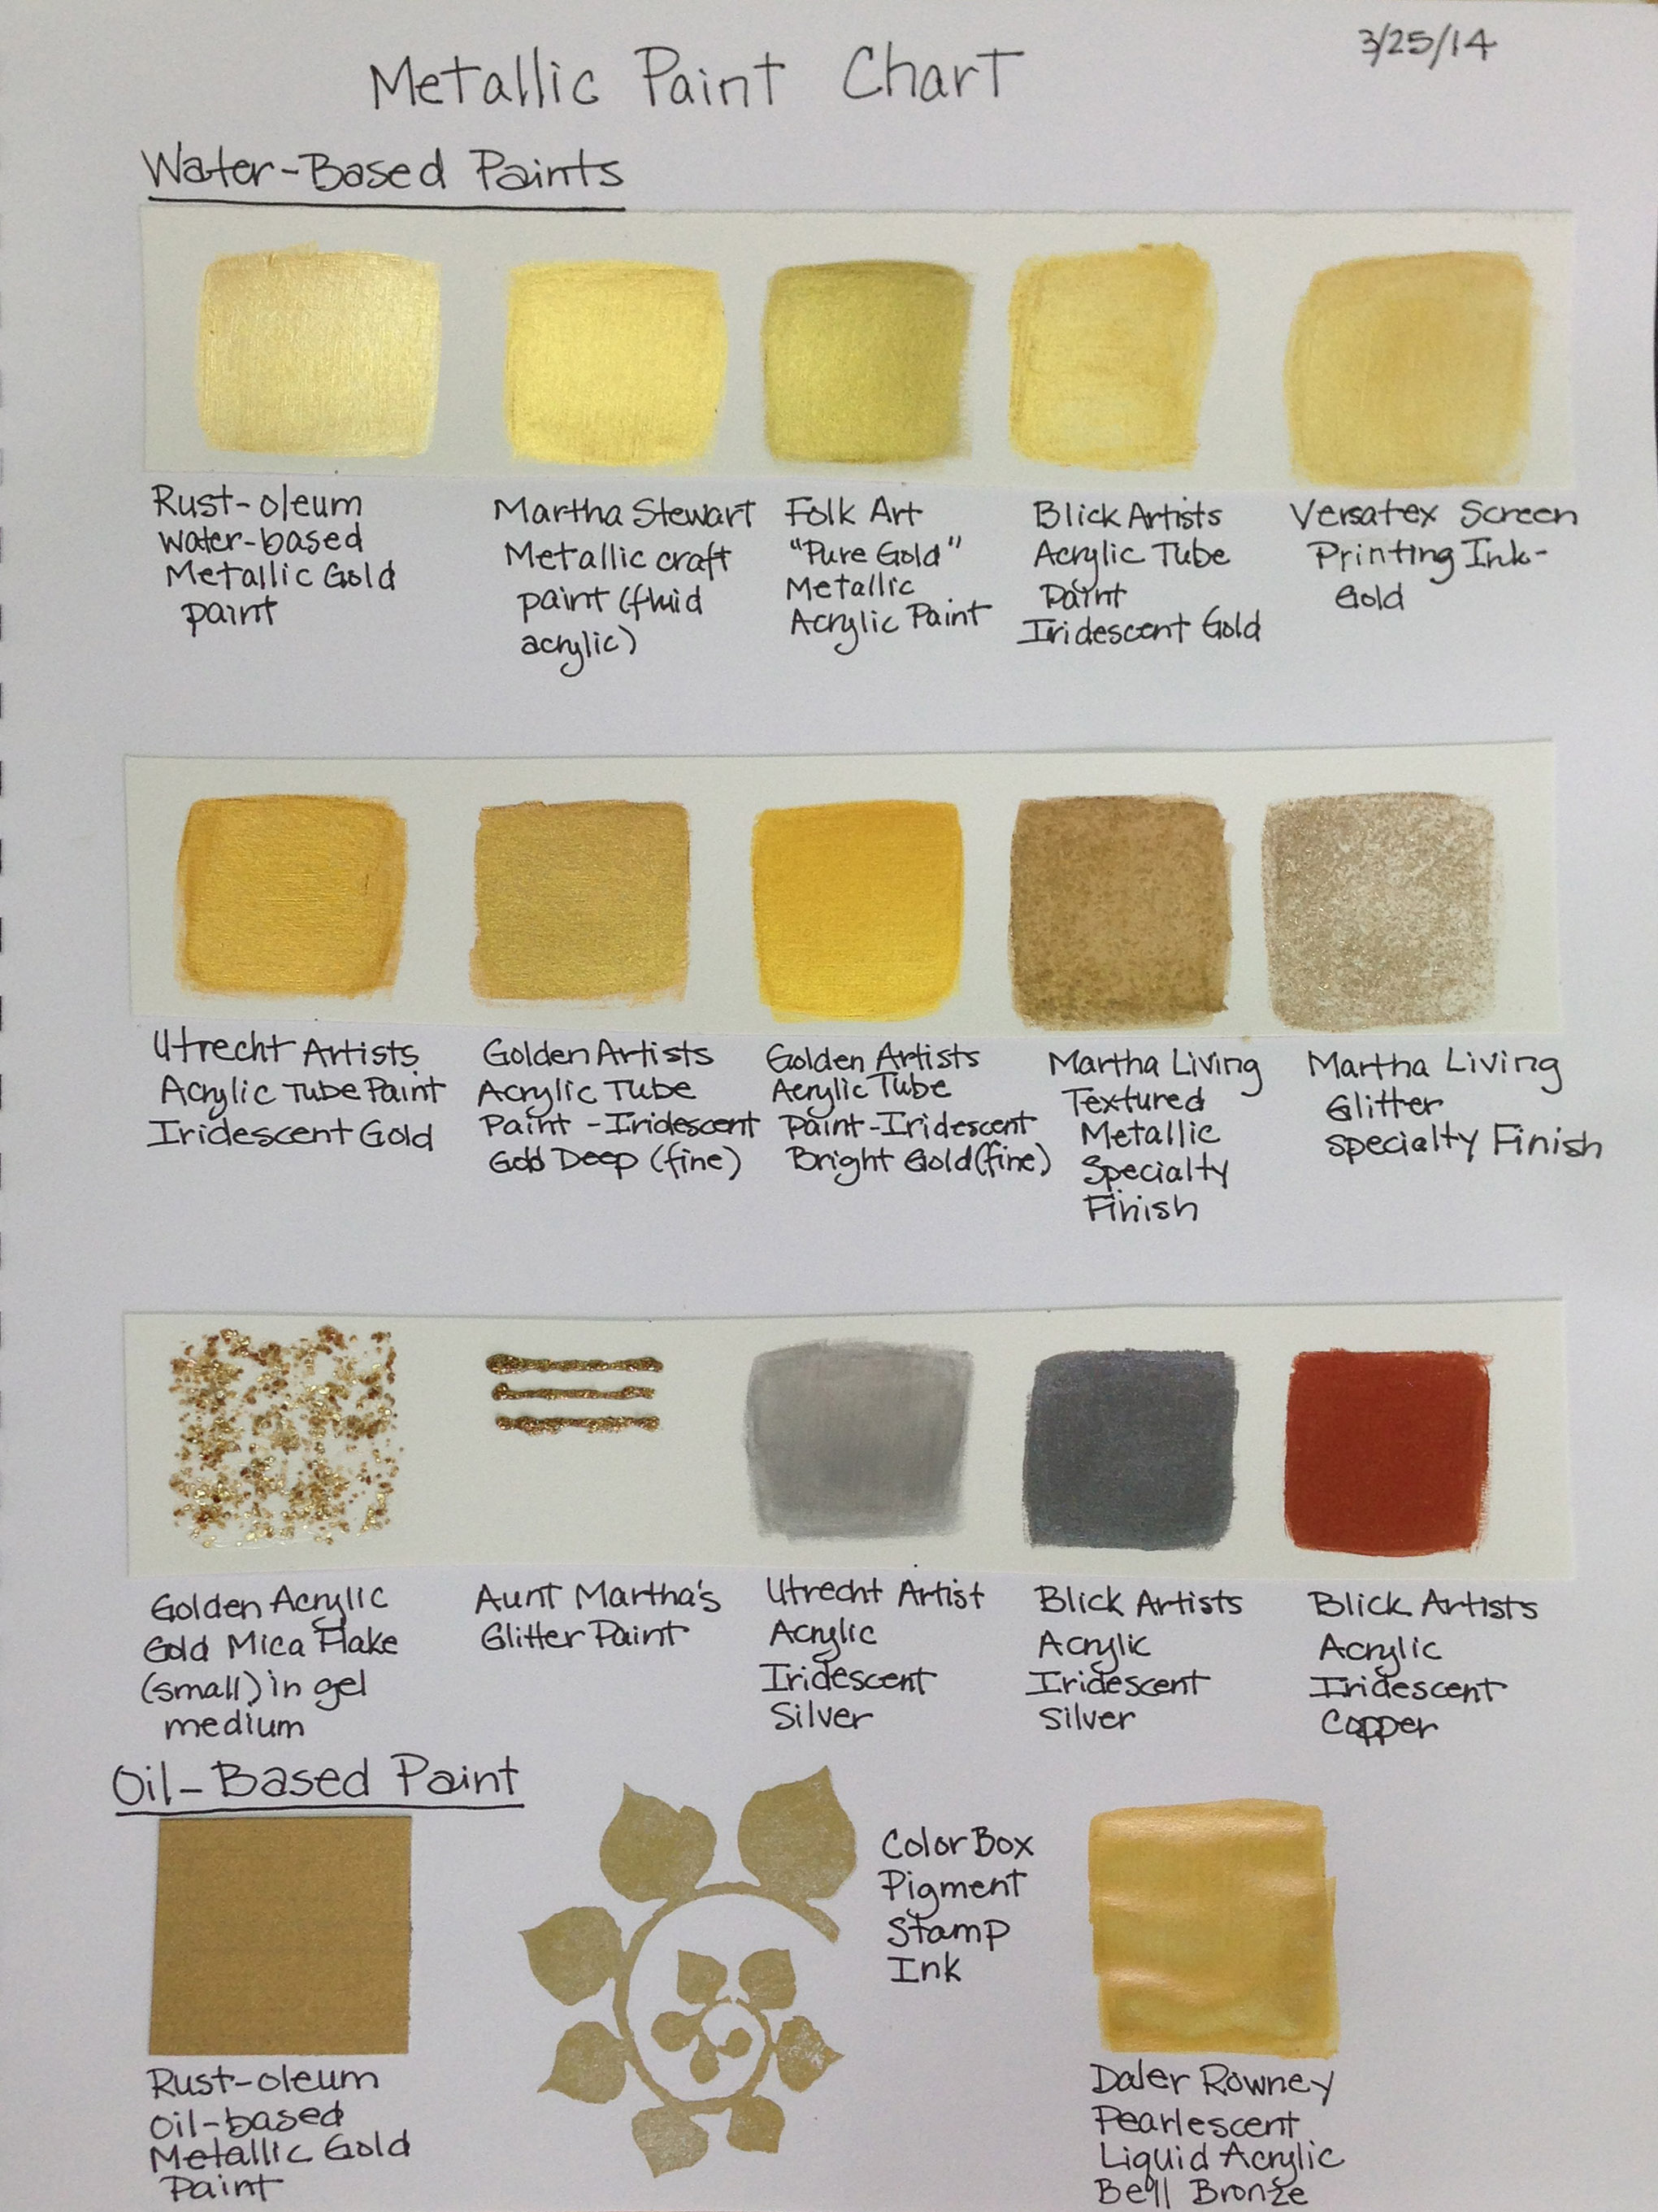 Folk art acrylic paint color chart - Metallic Gold Paint Chart